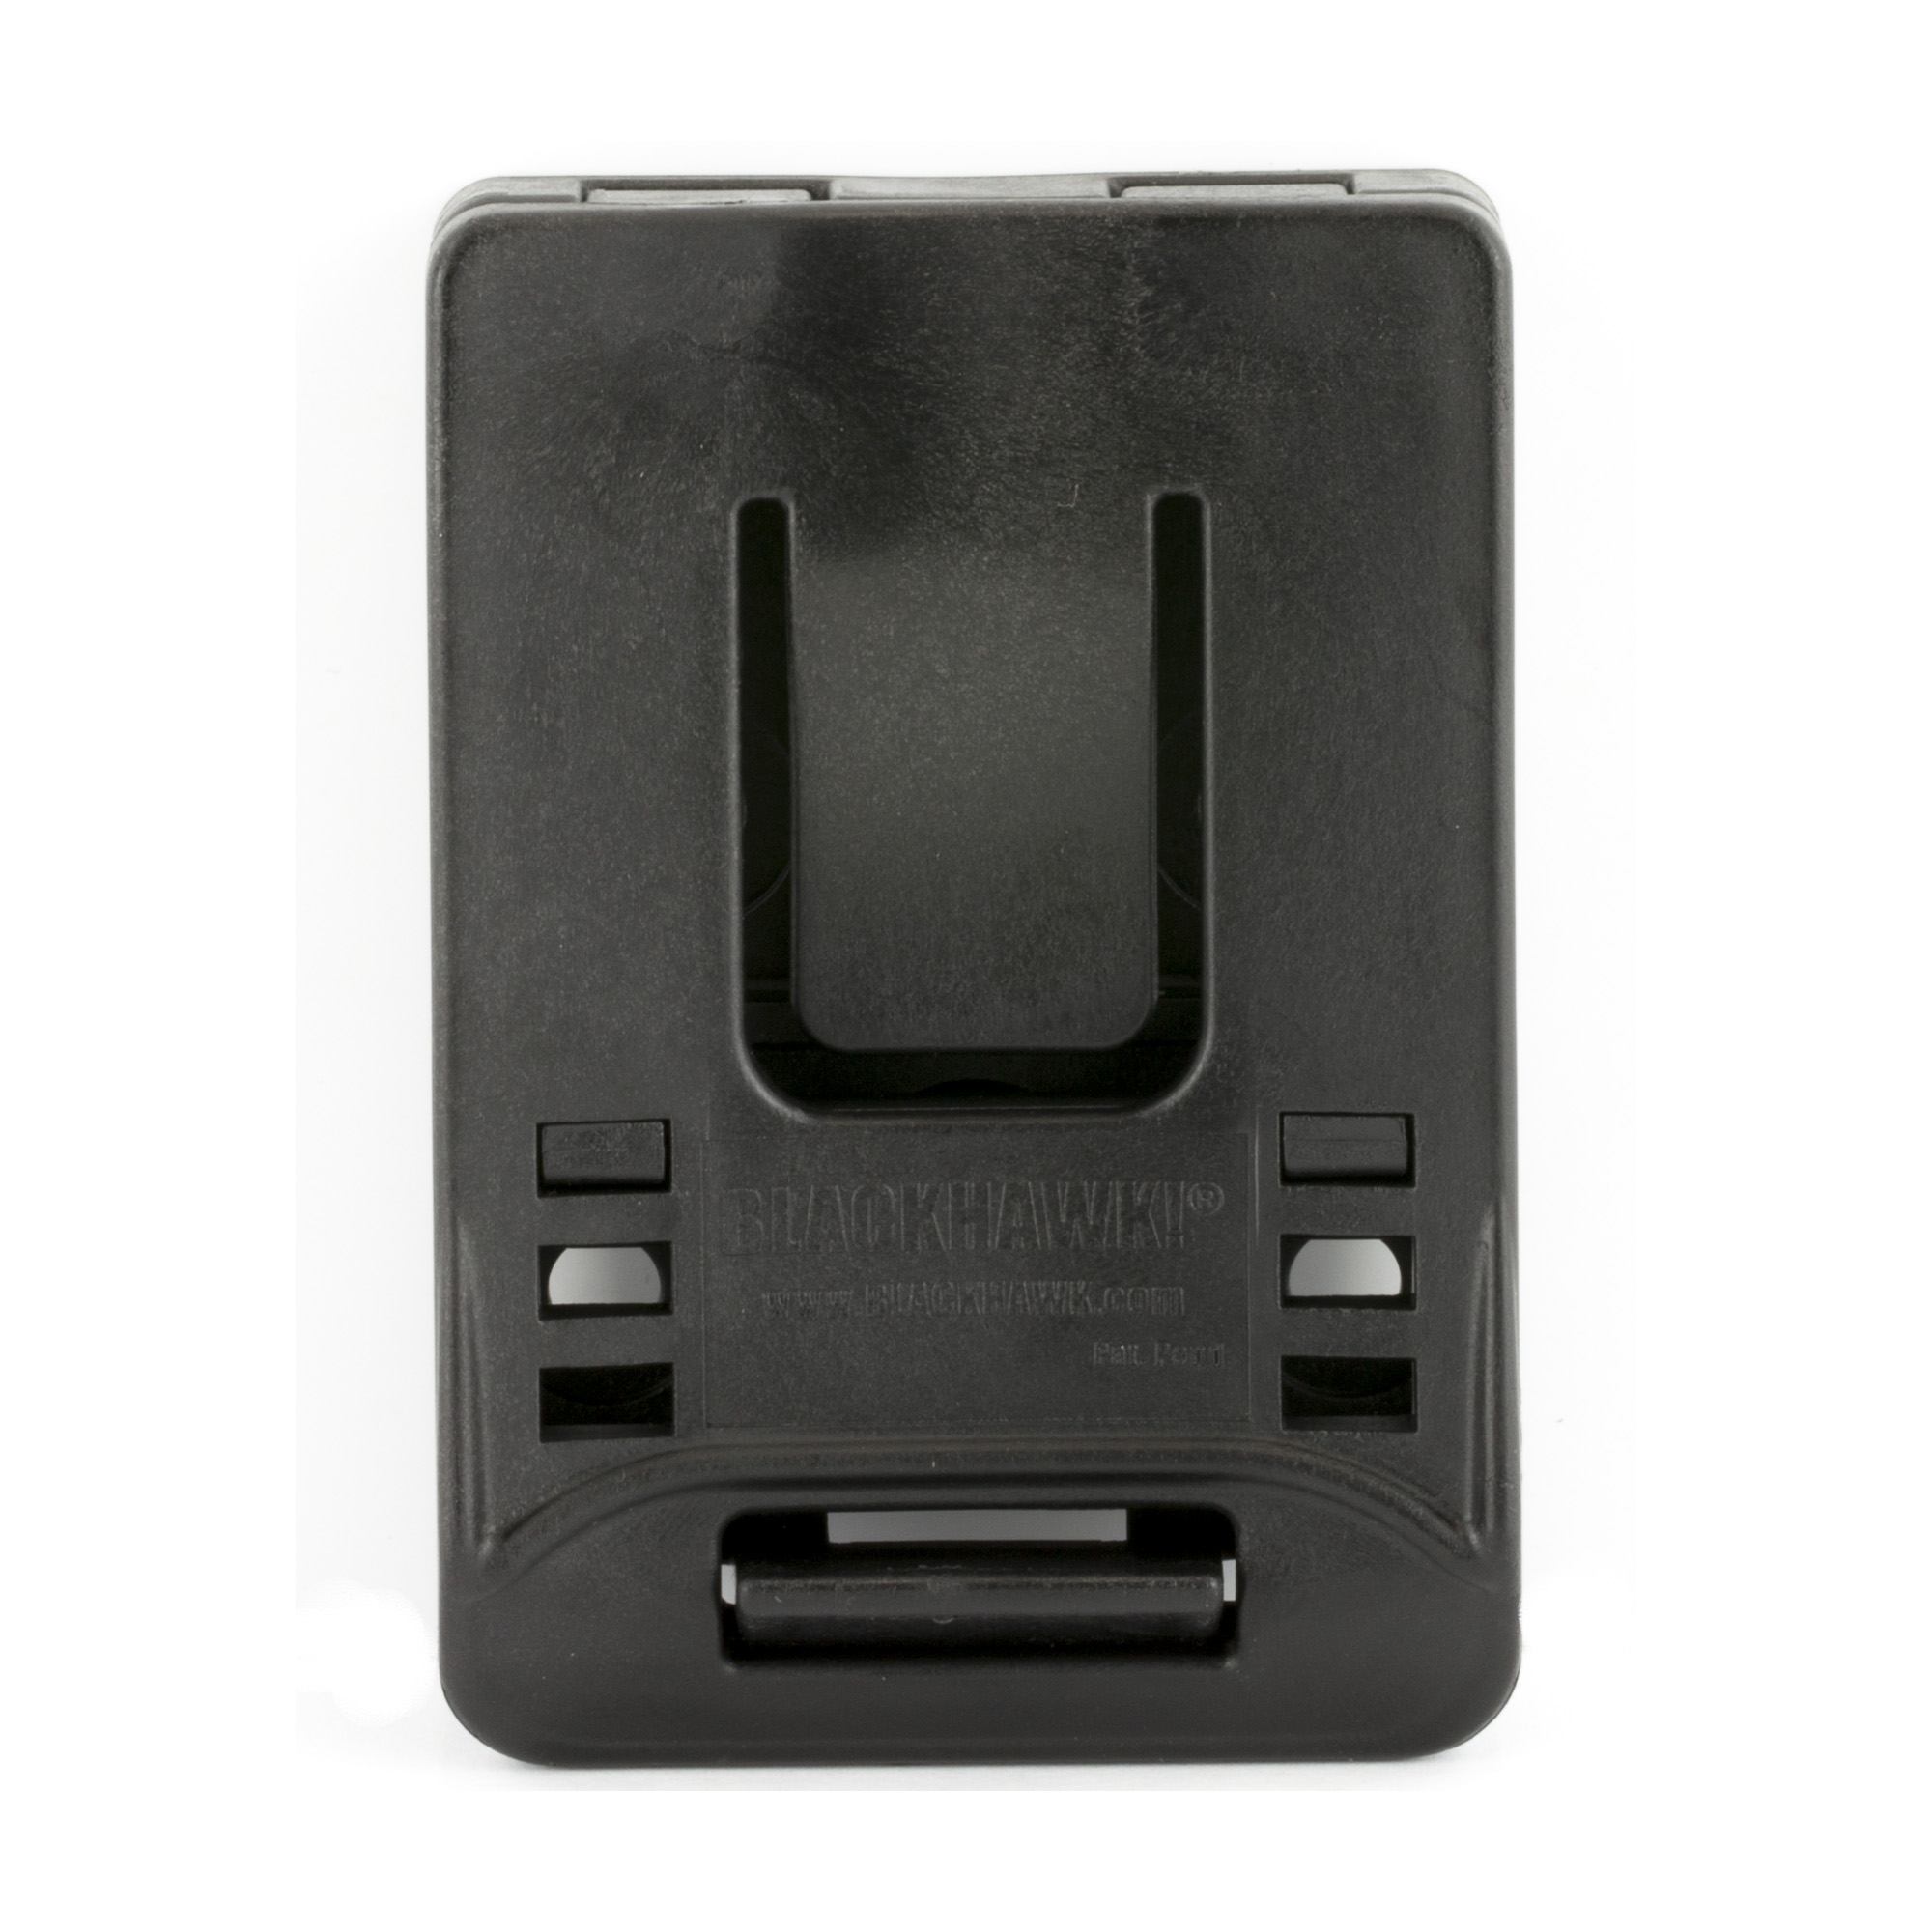 """Designed to fit any BLACKHAWK(R) injection-molded duty holster"""" it allows easy attachment of the holster to your duty belt without unthreading other gear. Mod-U-Lok platform and included screws."""